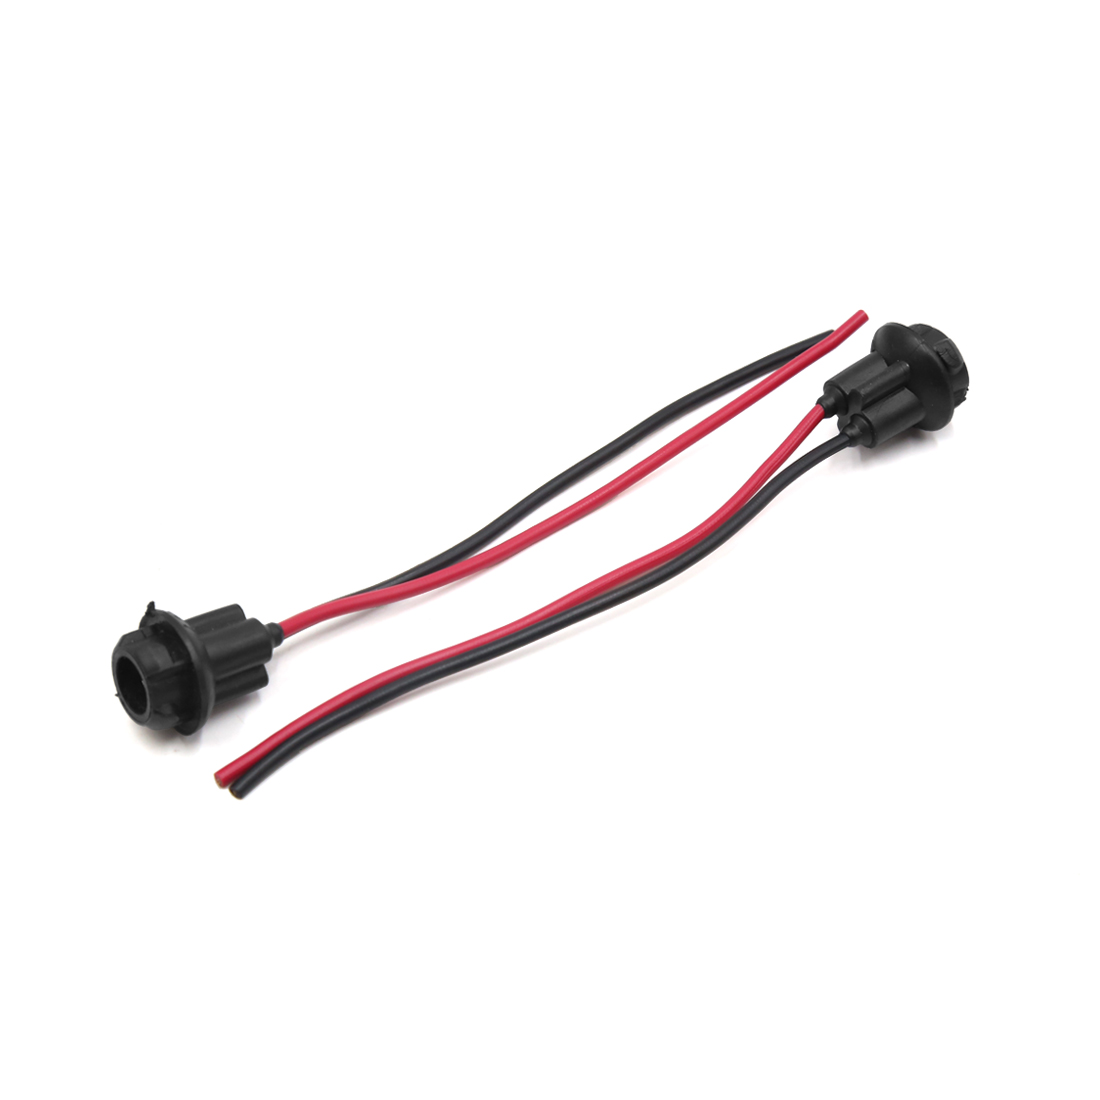 hight resolution of 2 pcs t10 led light lamp bulb socket holder harness wire connector for auto car